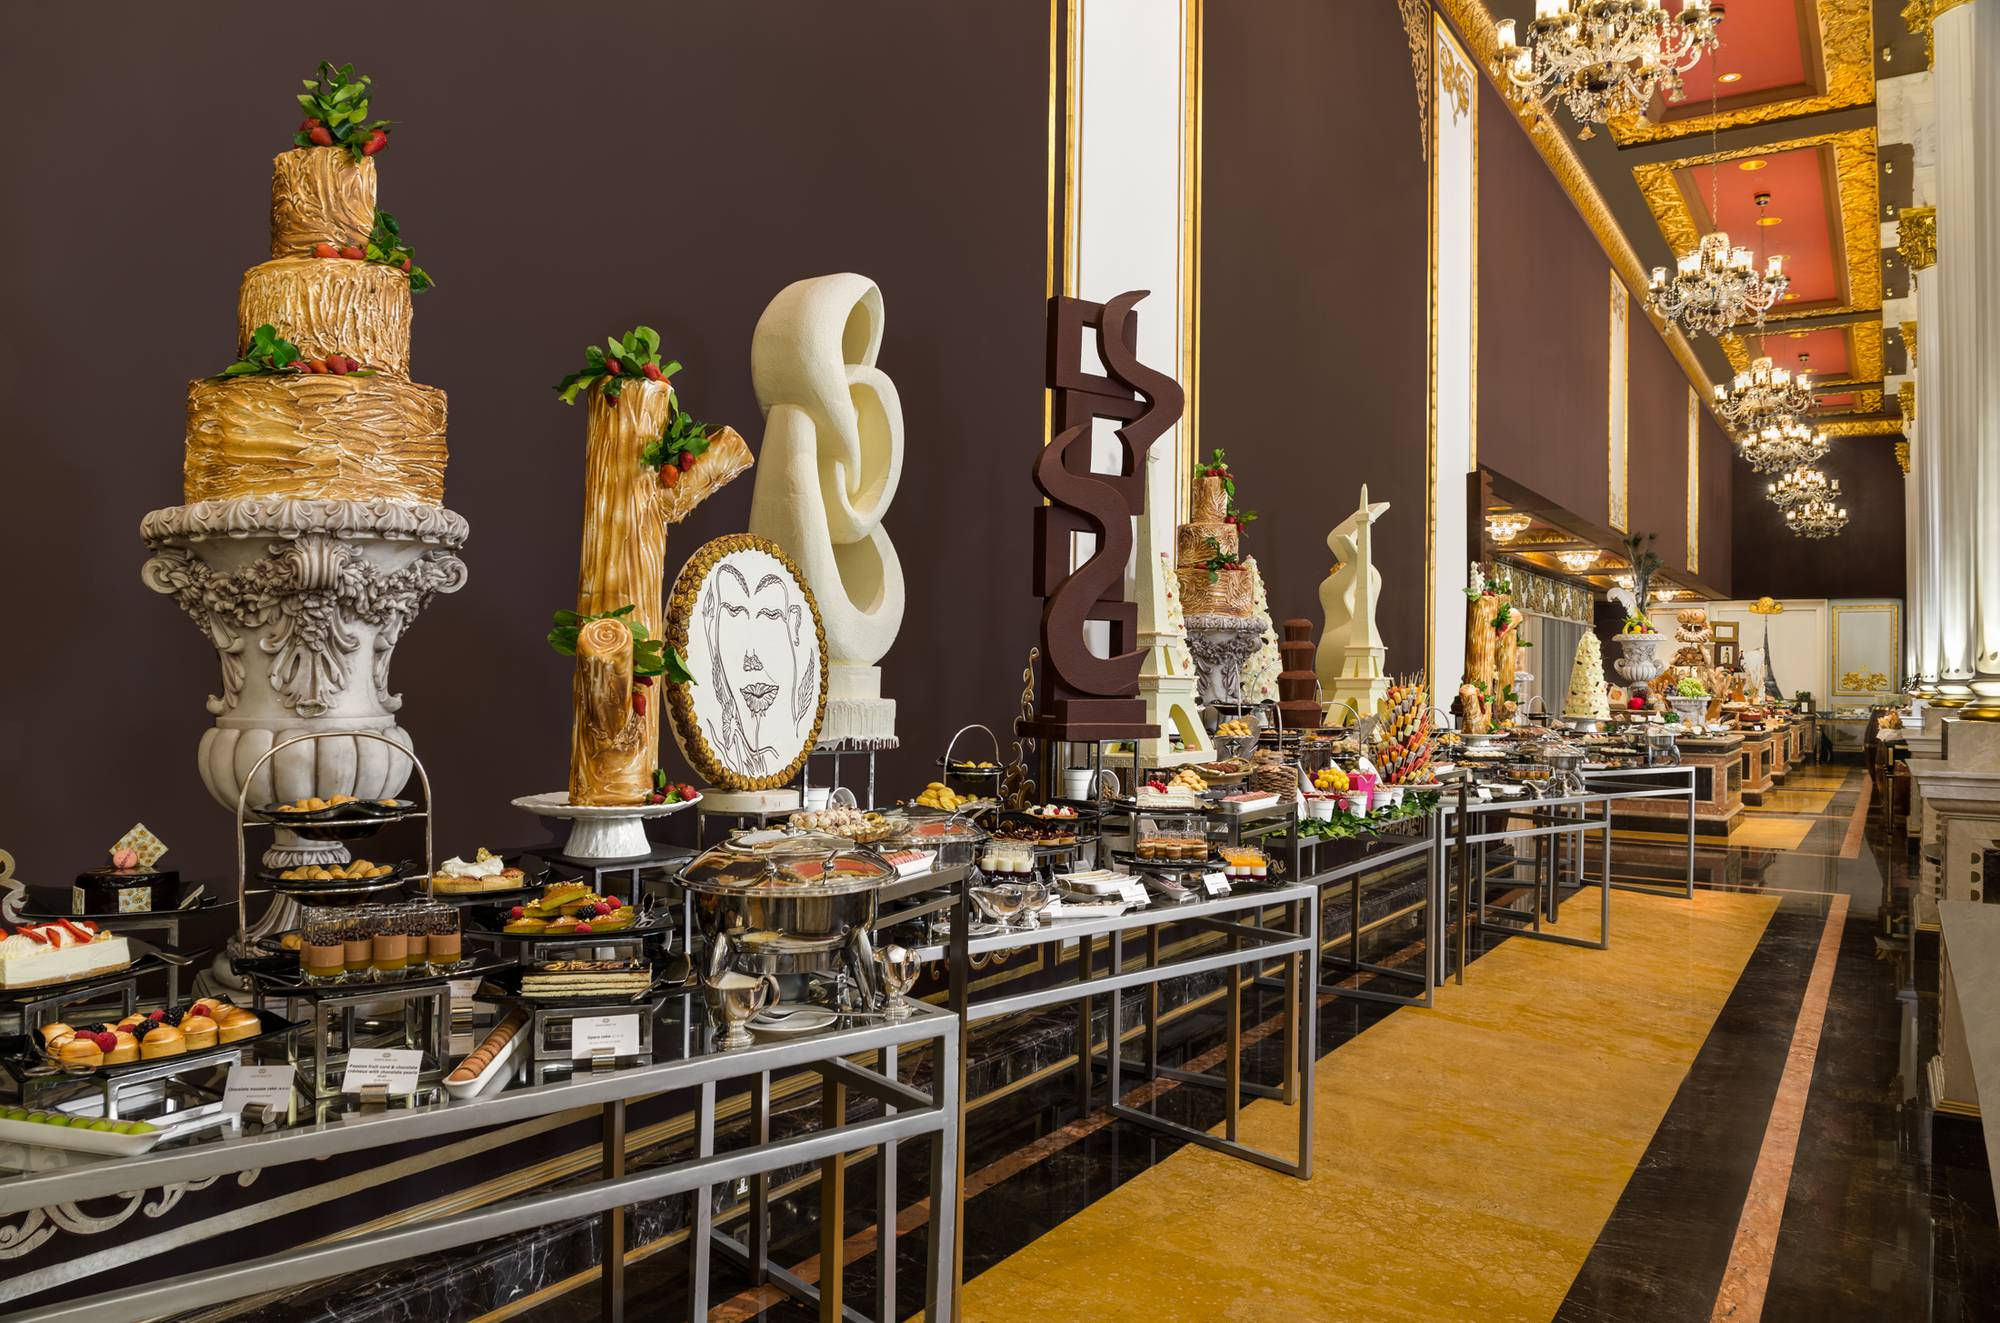 JumeirahZabeel Saray - Imperium Brunch - Dessert Station - Dubai brunches - FooDiva